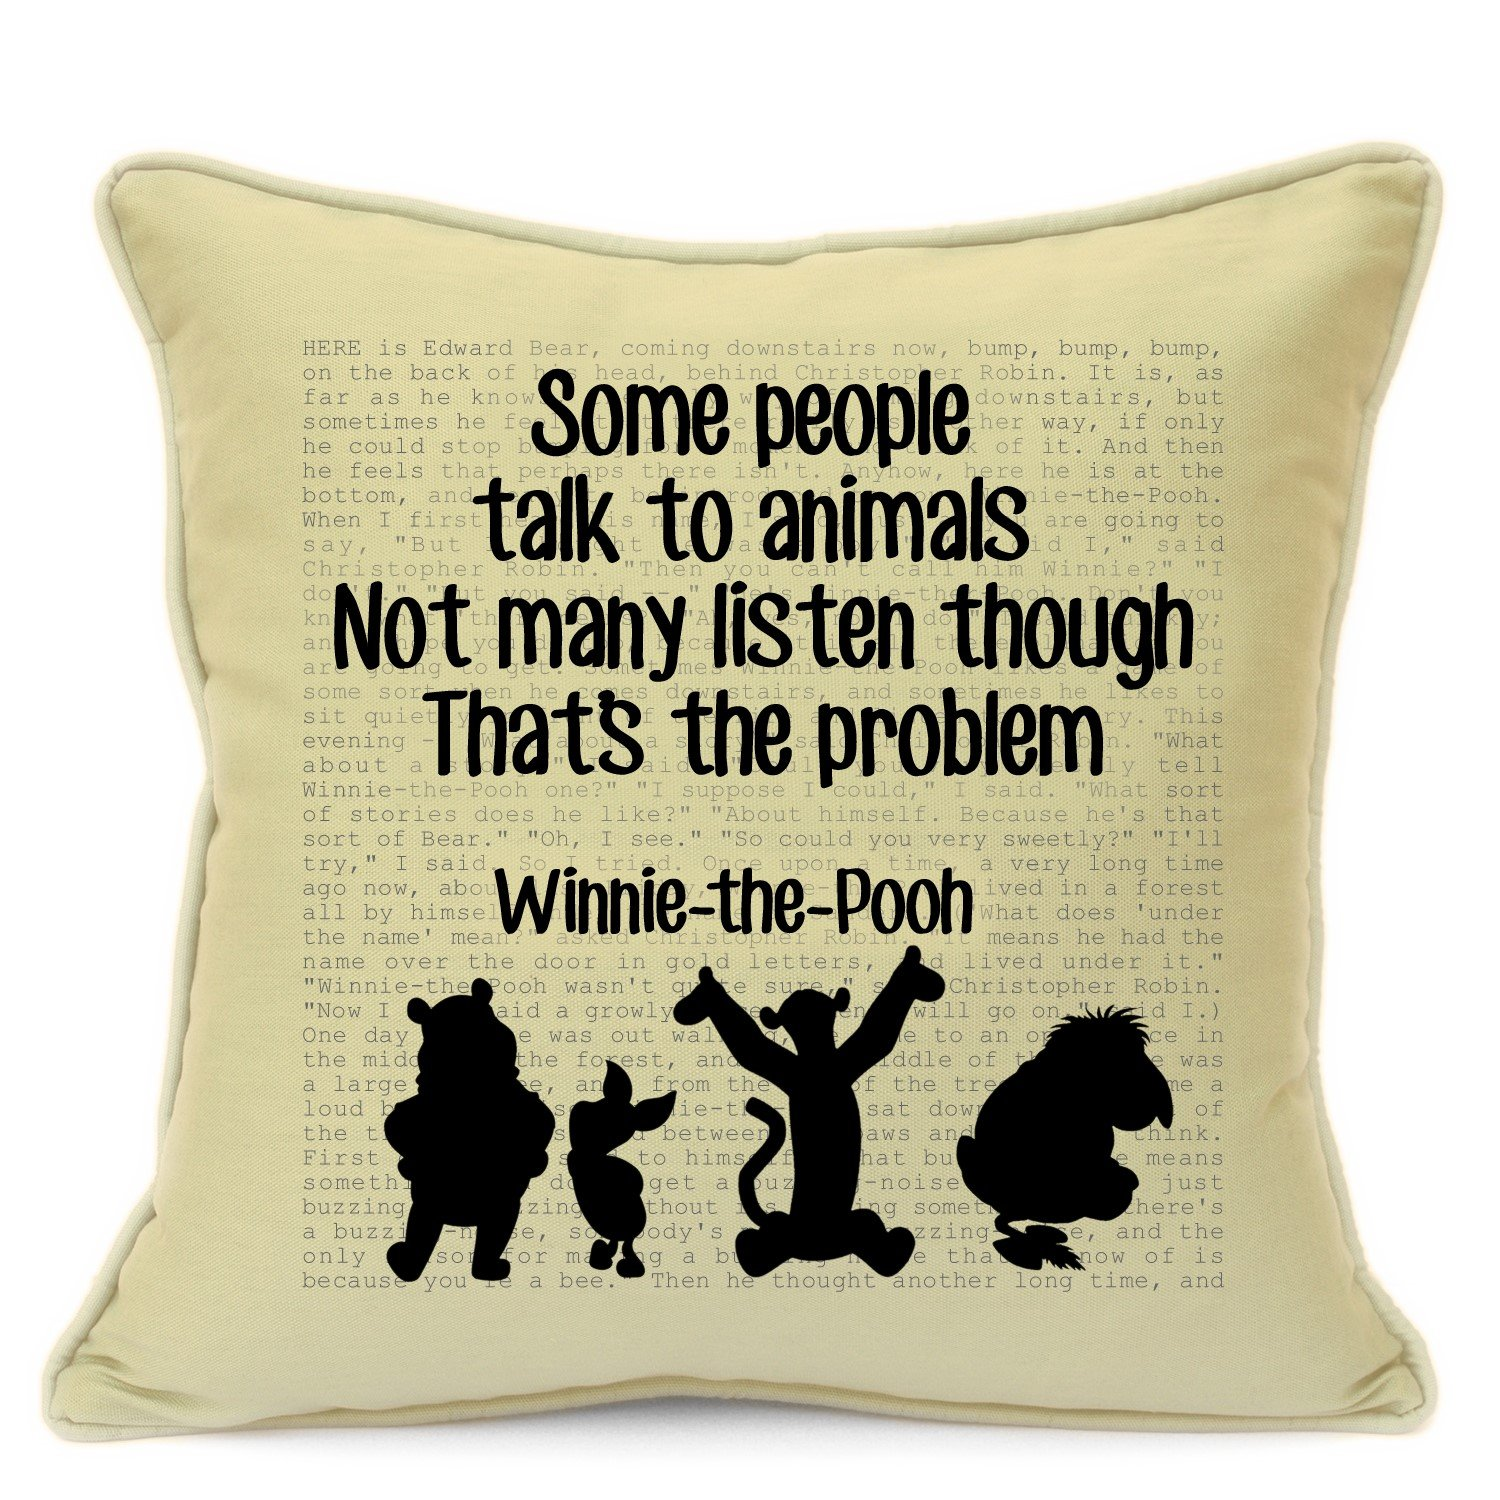 "Vintage Winnie The Pooh Disney Quotes Birthday Christmas Xmas 2017 Housewarming Party Gifts For Kids Girls Nursery Art Handmade 18"" Cushion Cover For Sofa Chair Couch Living Room Bedroom"